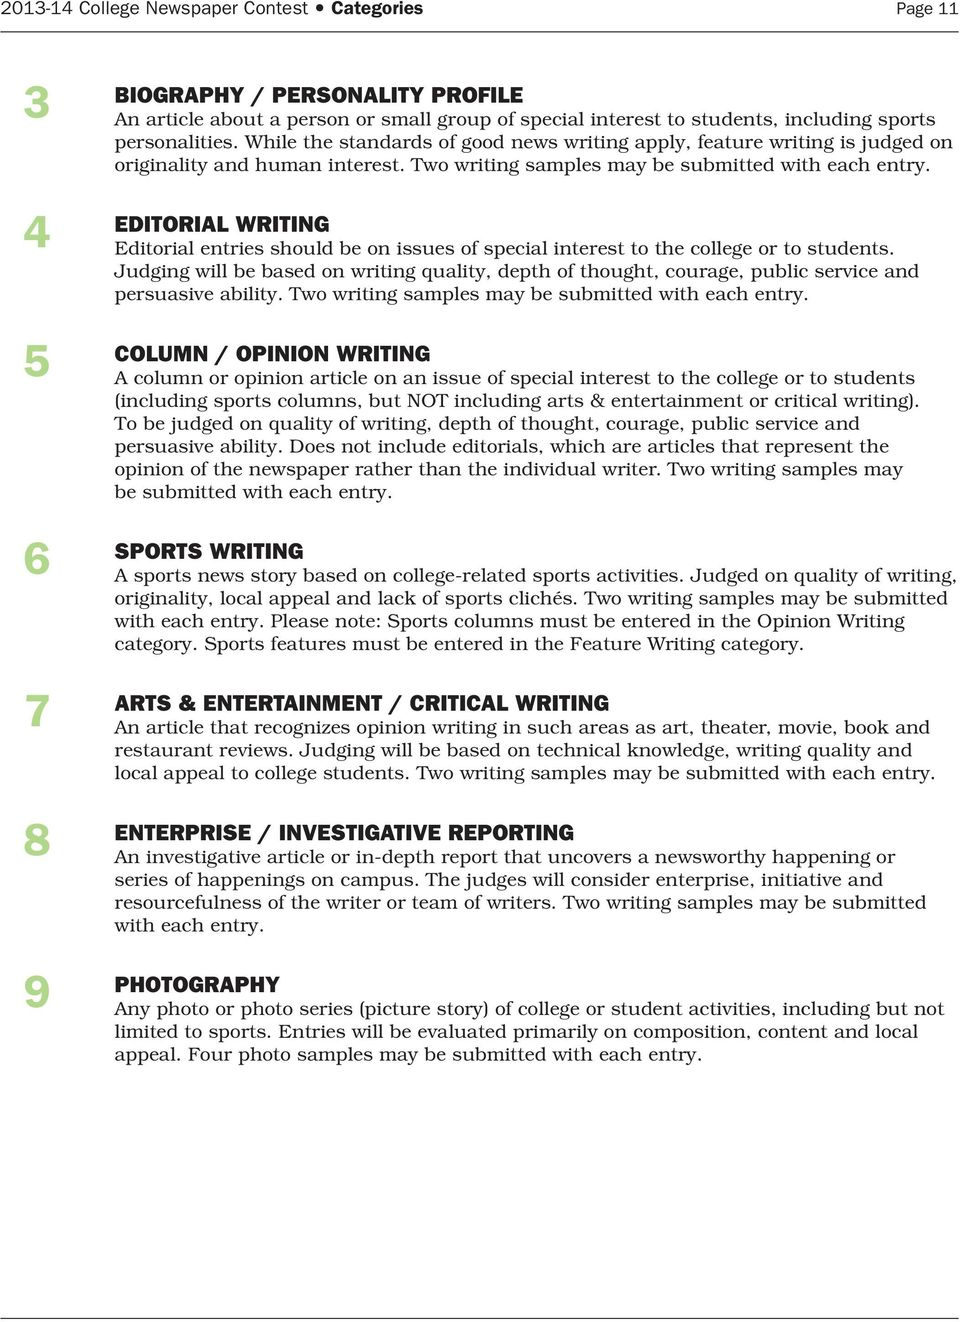 4 EDITORIAL WRITING Editorial entries should be on issues of special interest to the college or to students.